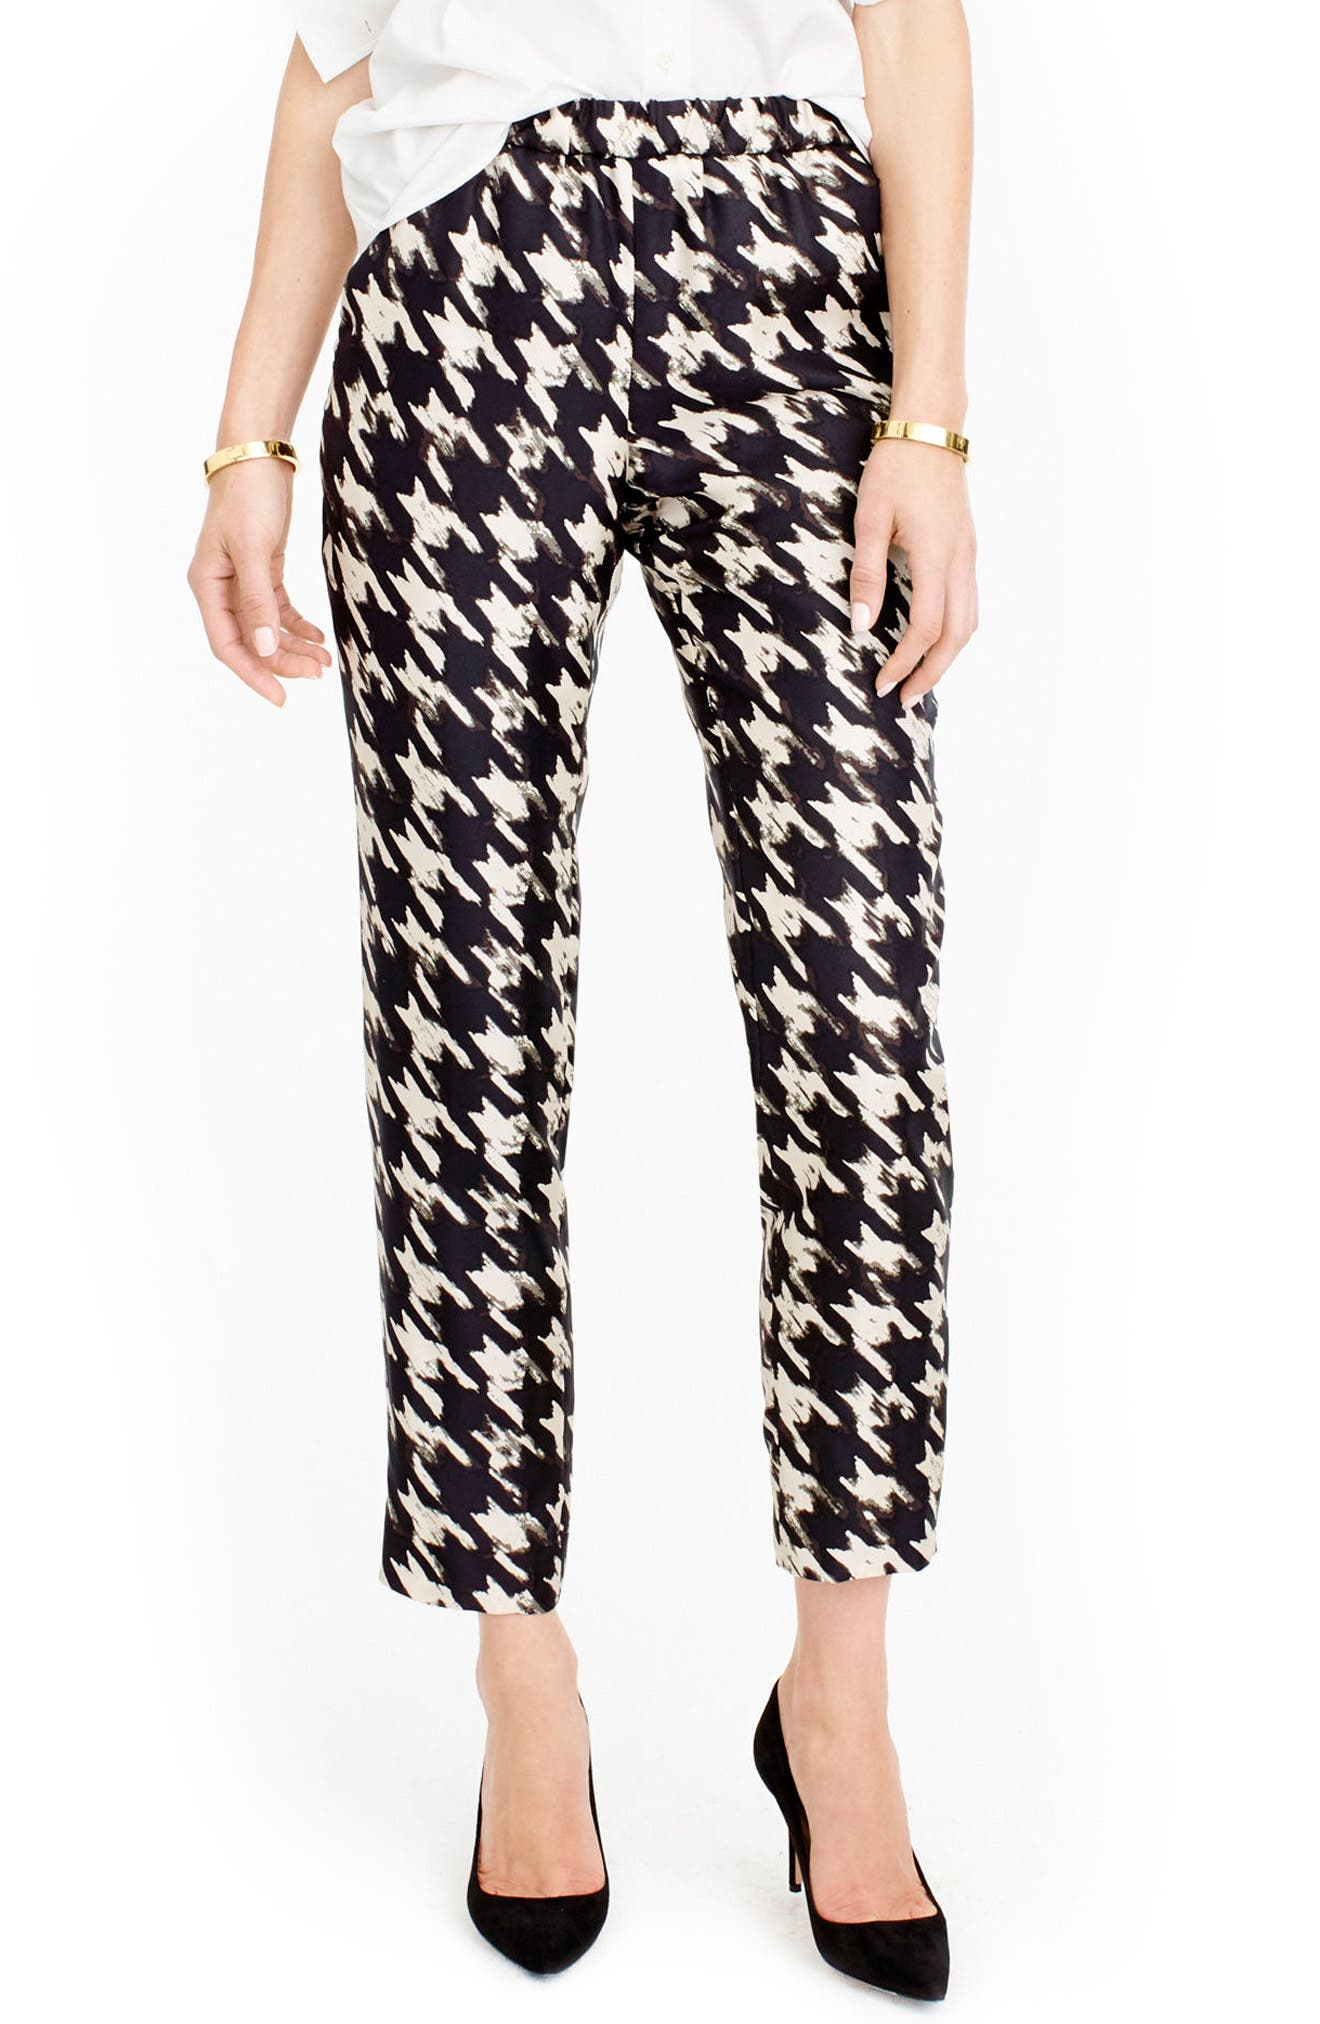 J.CREW, Forrester Wolfstooth Silk Pants, Main thumbnail 1, color, 901